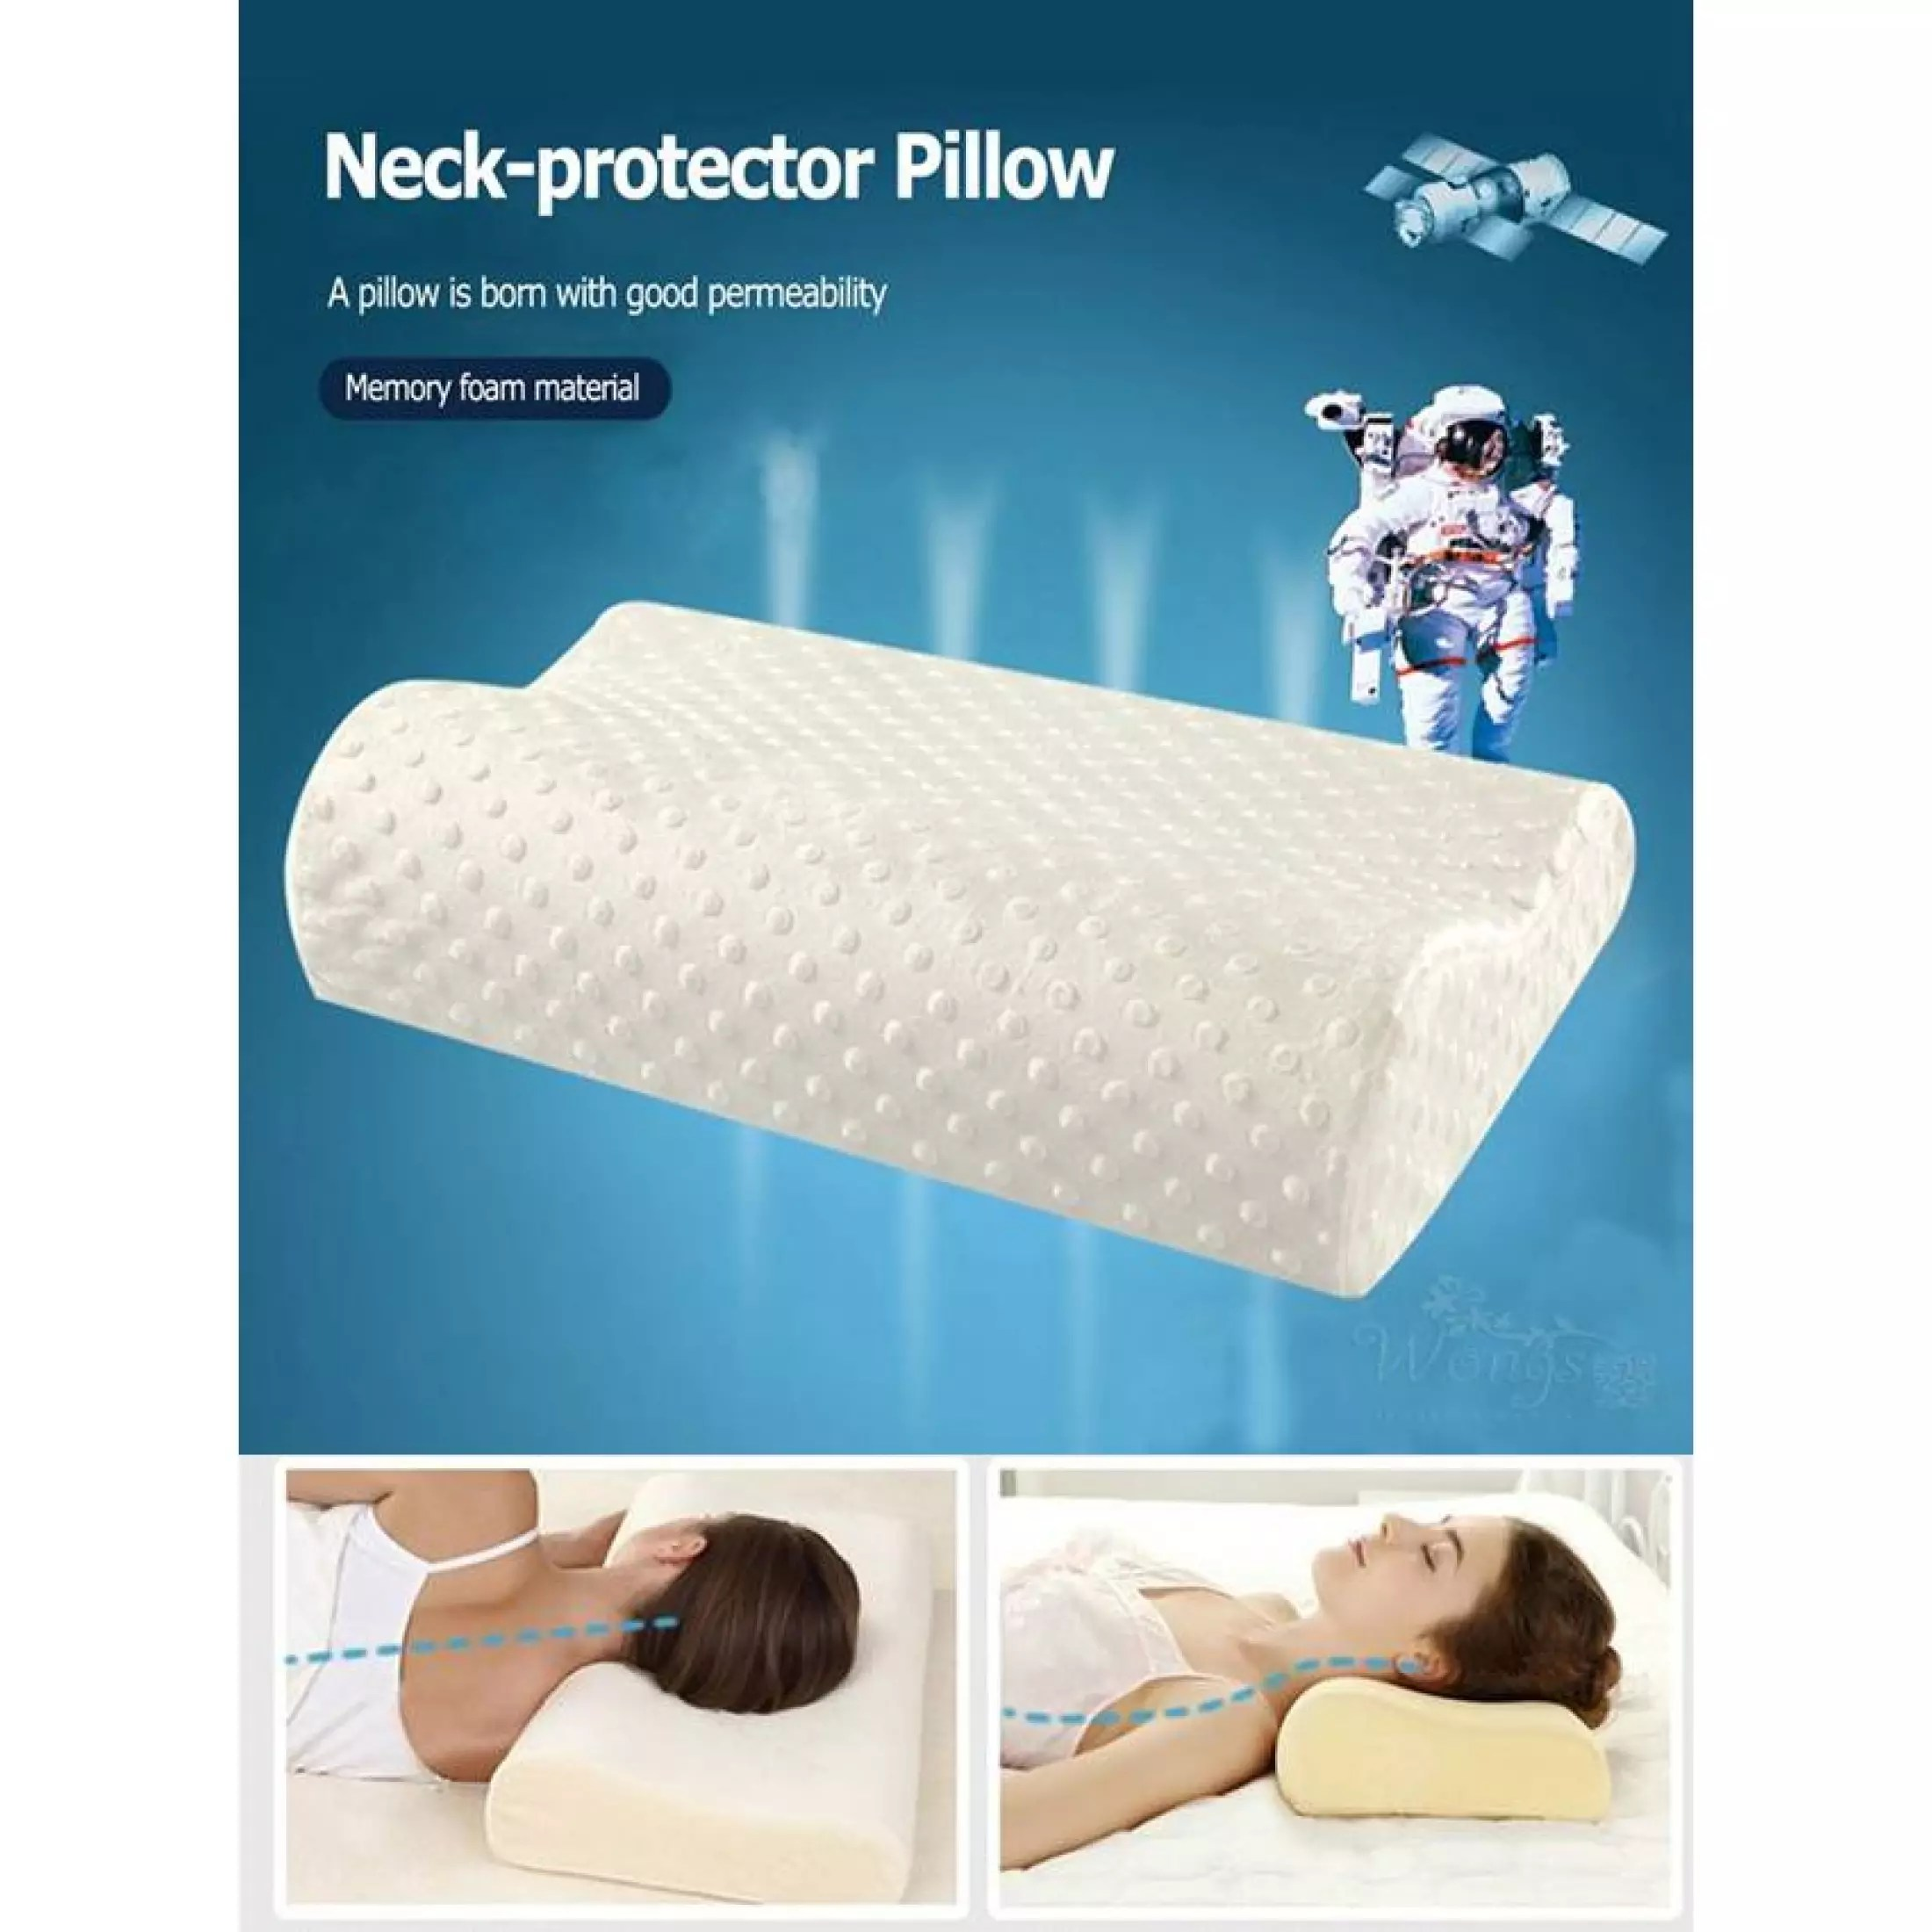 healifty contour pillow thermostatic memory foam pillow sleeping orthopedic pillow for neck pain support side sleepers back and stomach sleepers